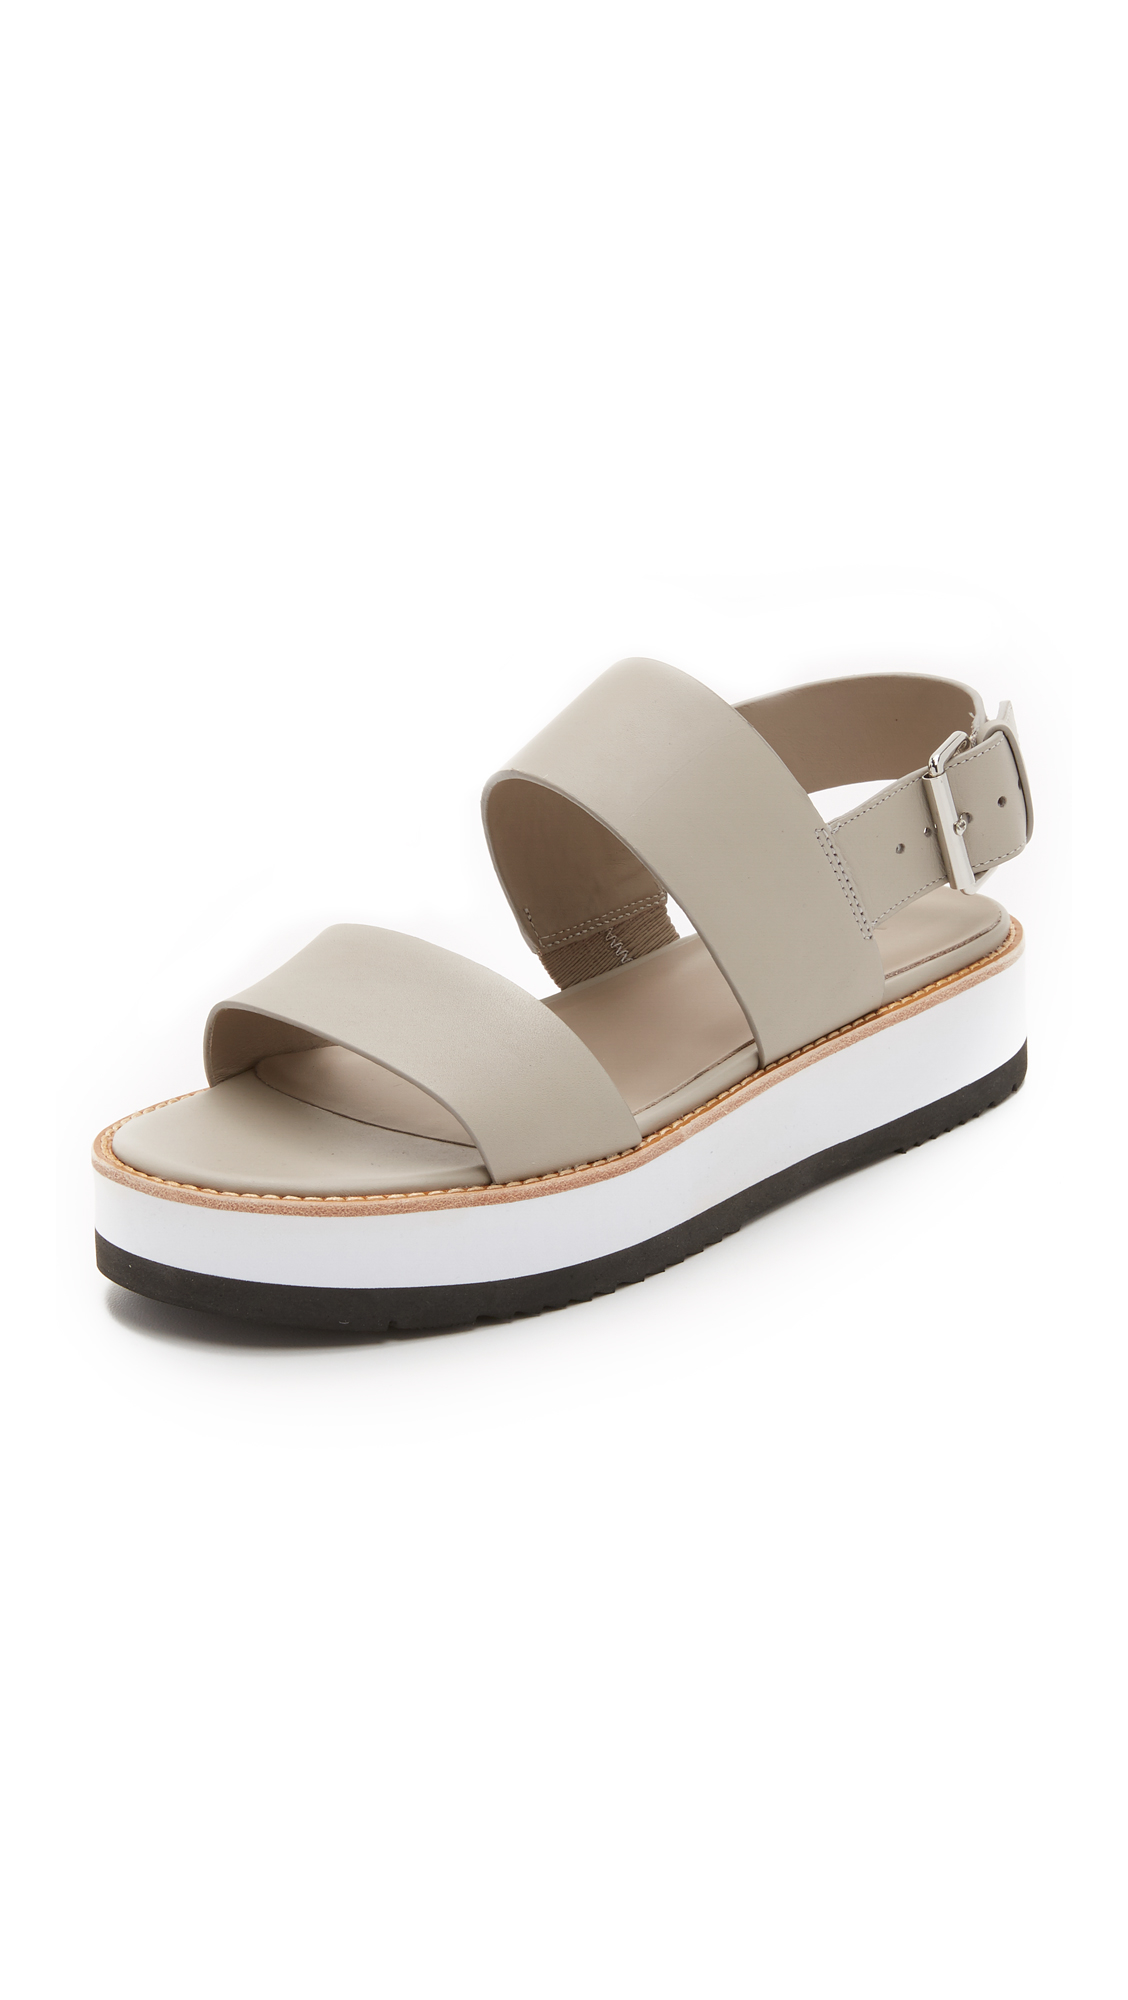 905d969d5a9 Lyst - Vince Mana Flatform Sandals in Natural